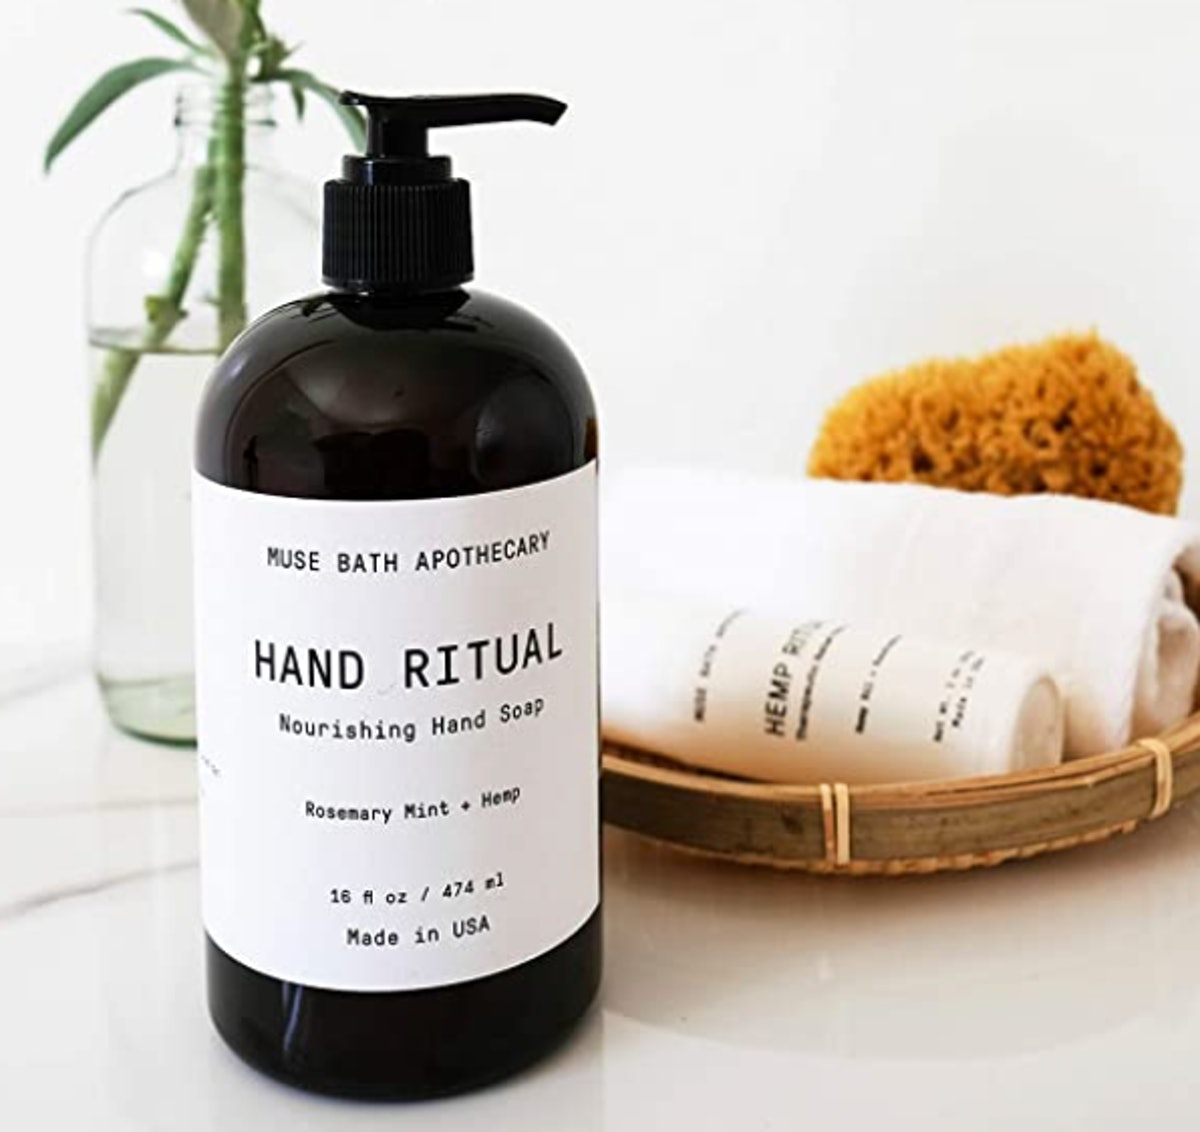 Muse Apothecary Hand Ritual - Aromatic and Nourishing Hand Soap